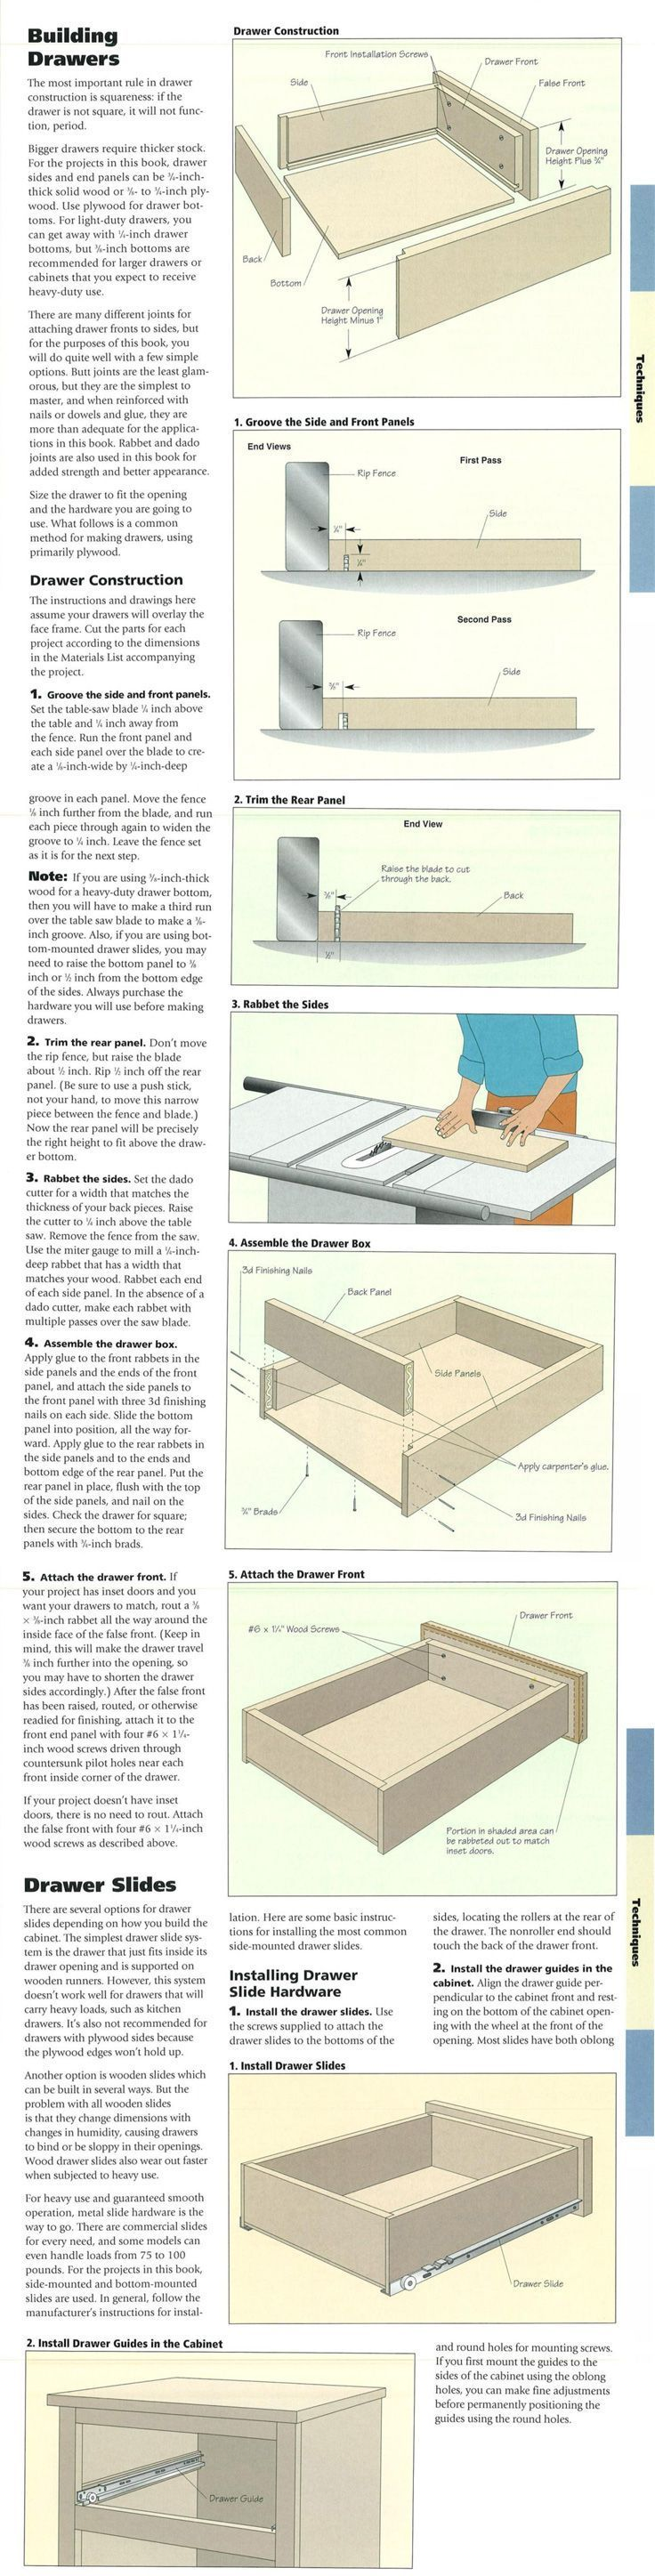 ❧ Building Drawers: